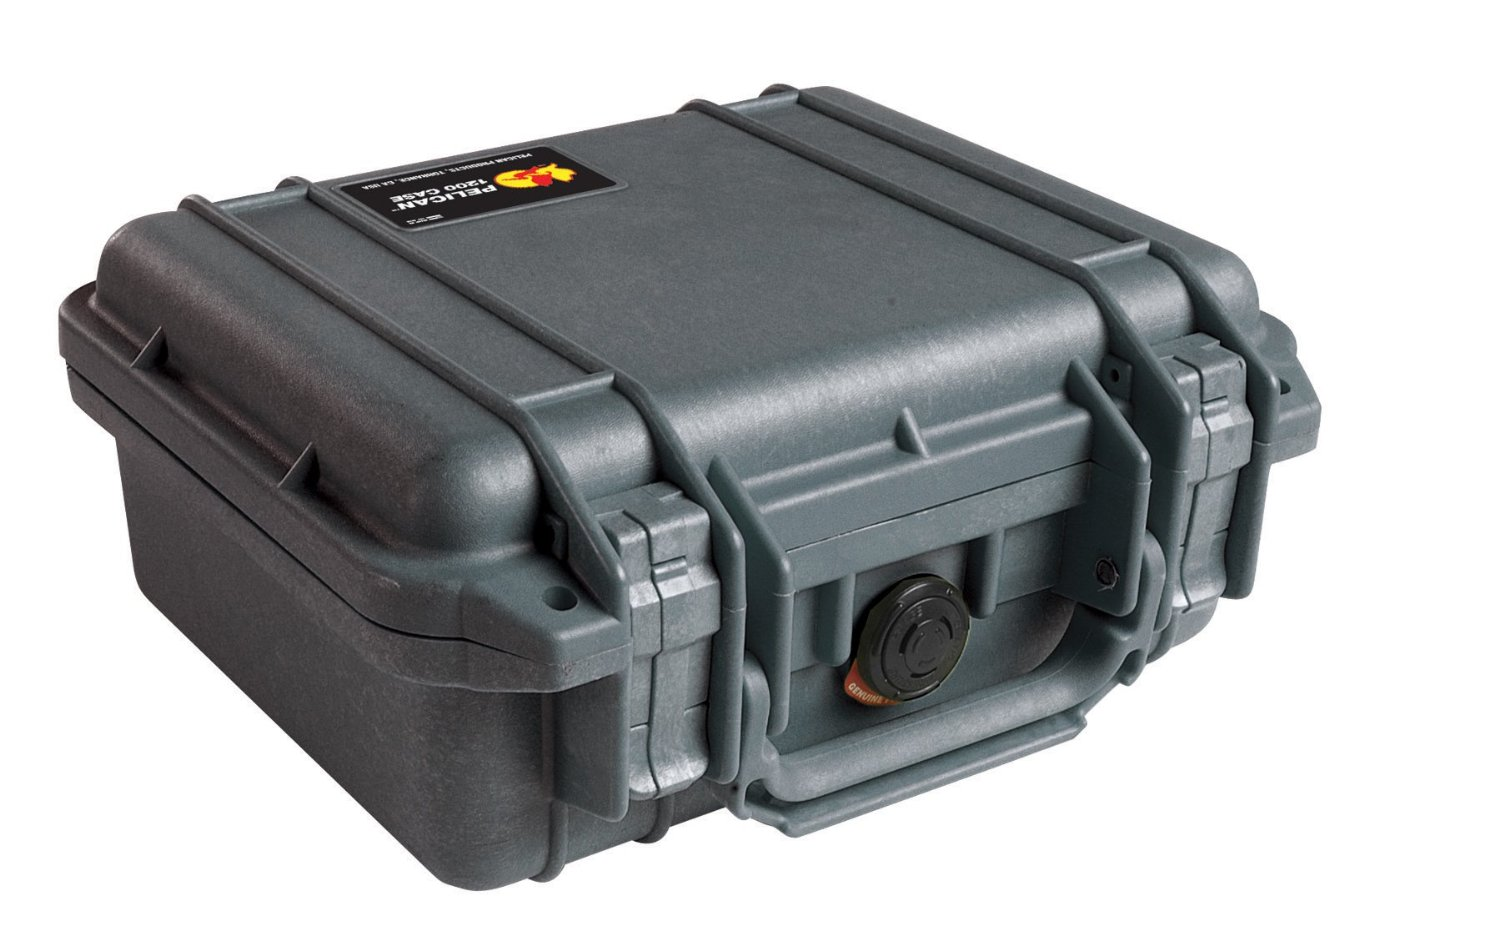 31873302f5 Top 5 Best Pelican Cases for Camera Review in 2019 - Trust Reviewz